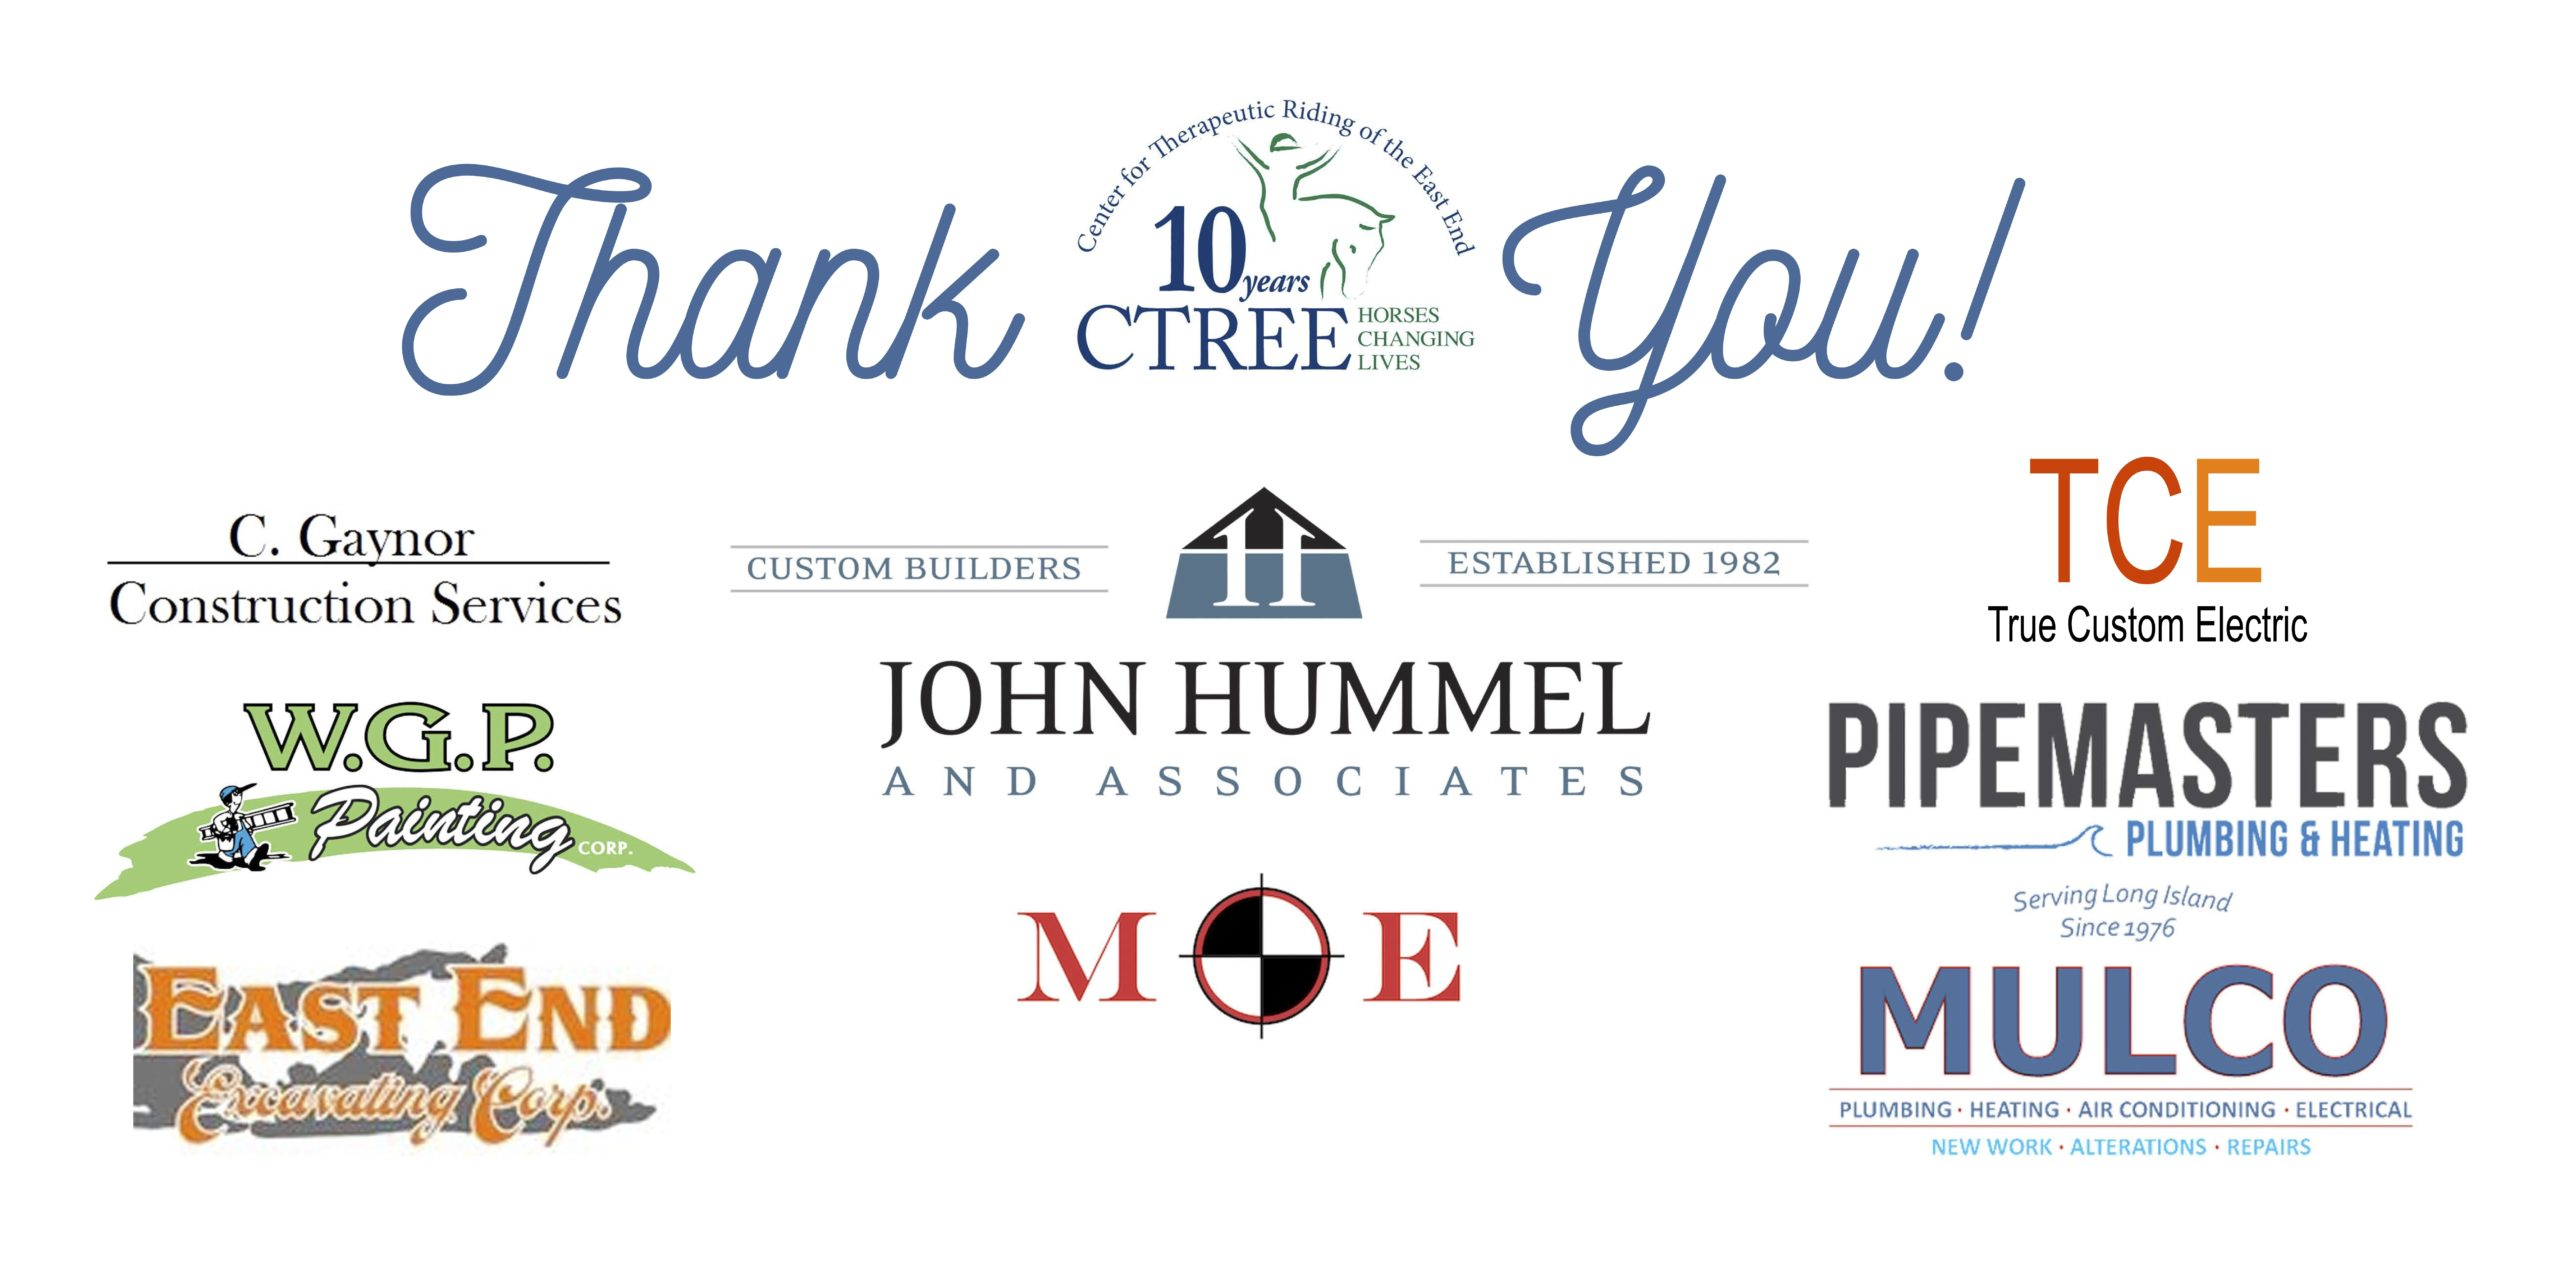 CTREE's thank you banner, honoring their donors.